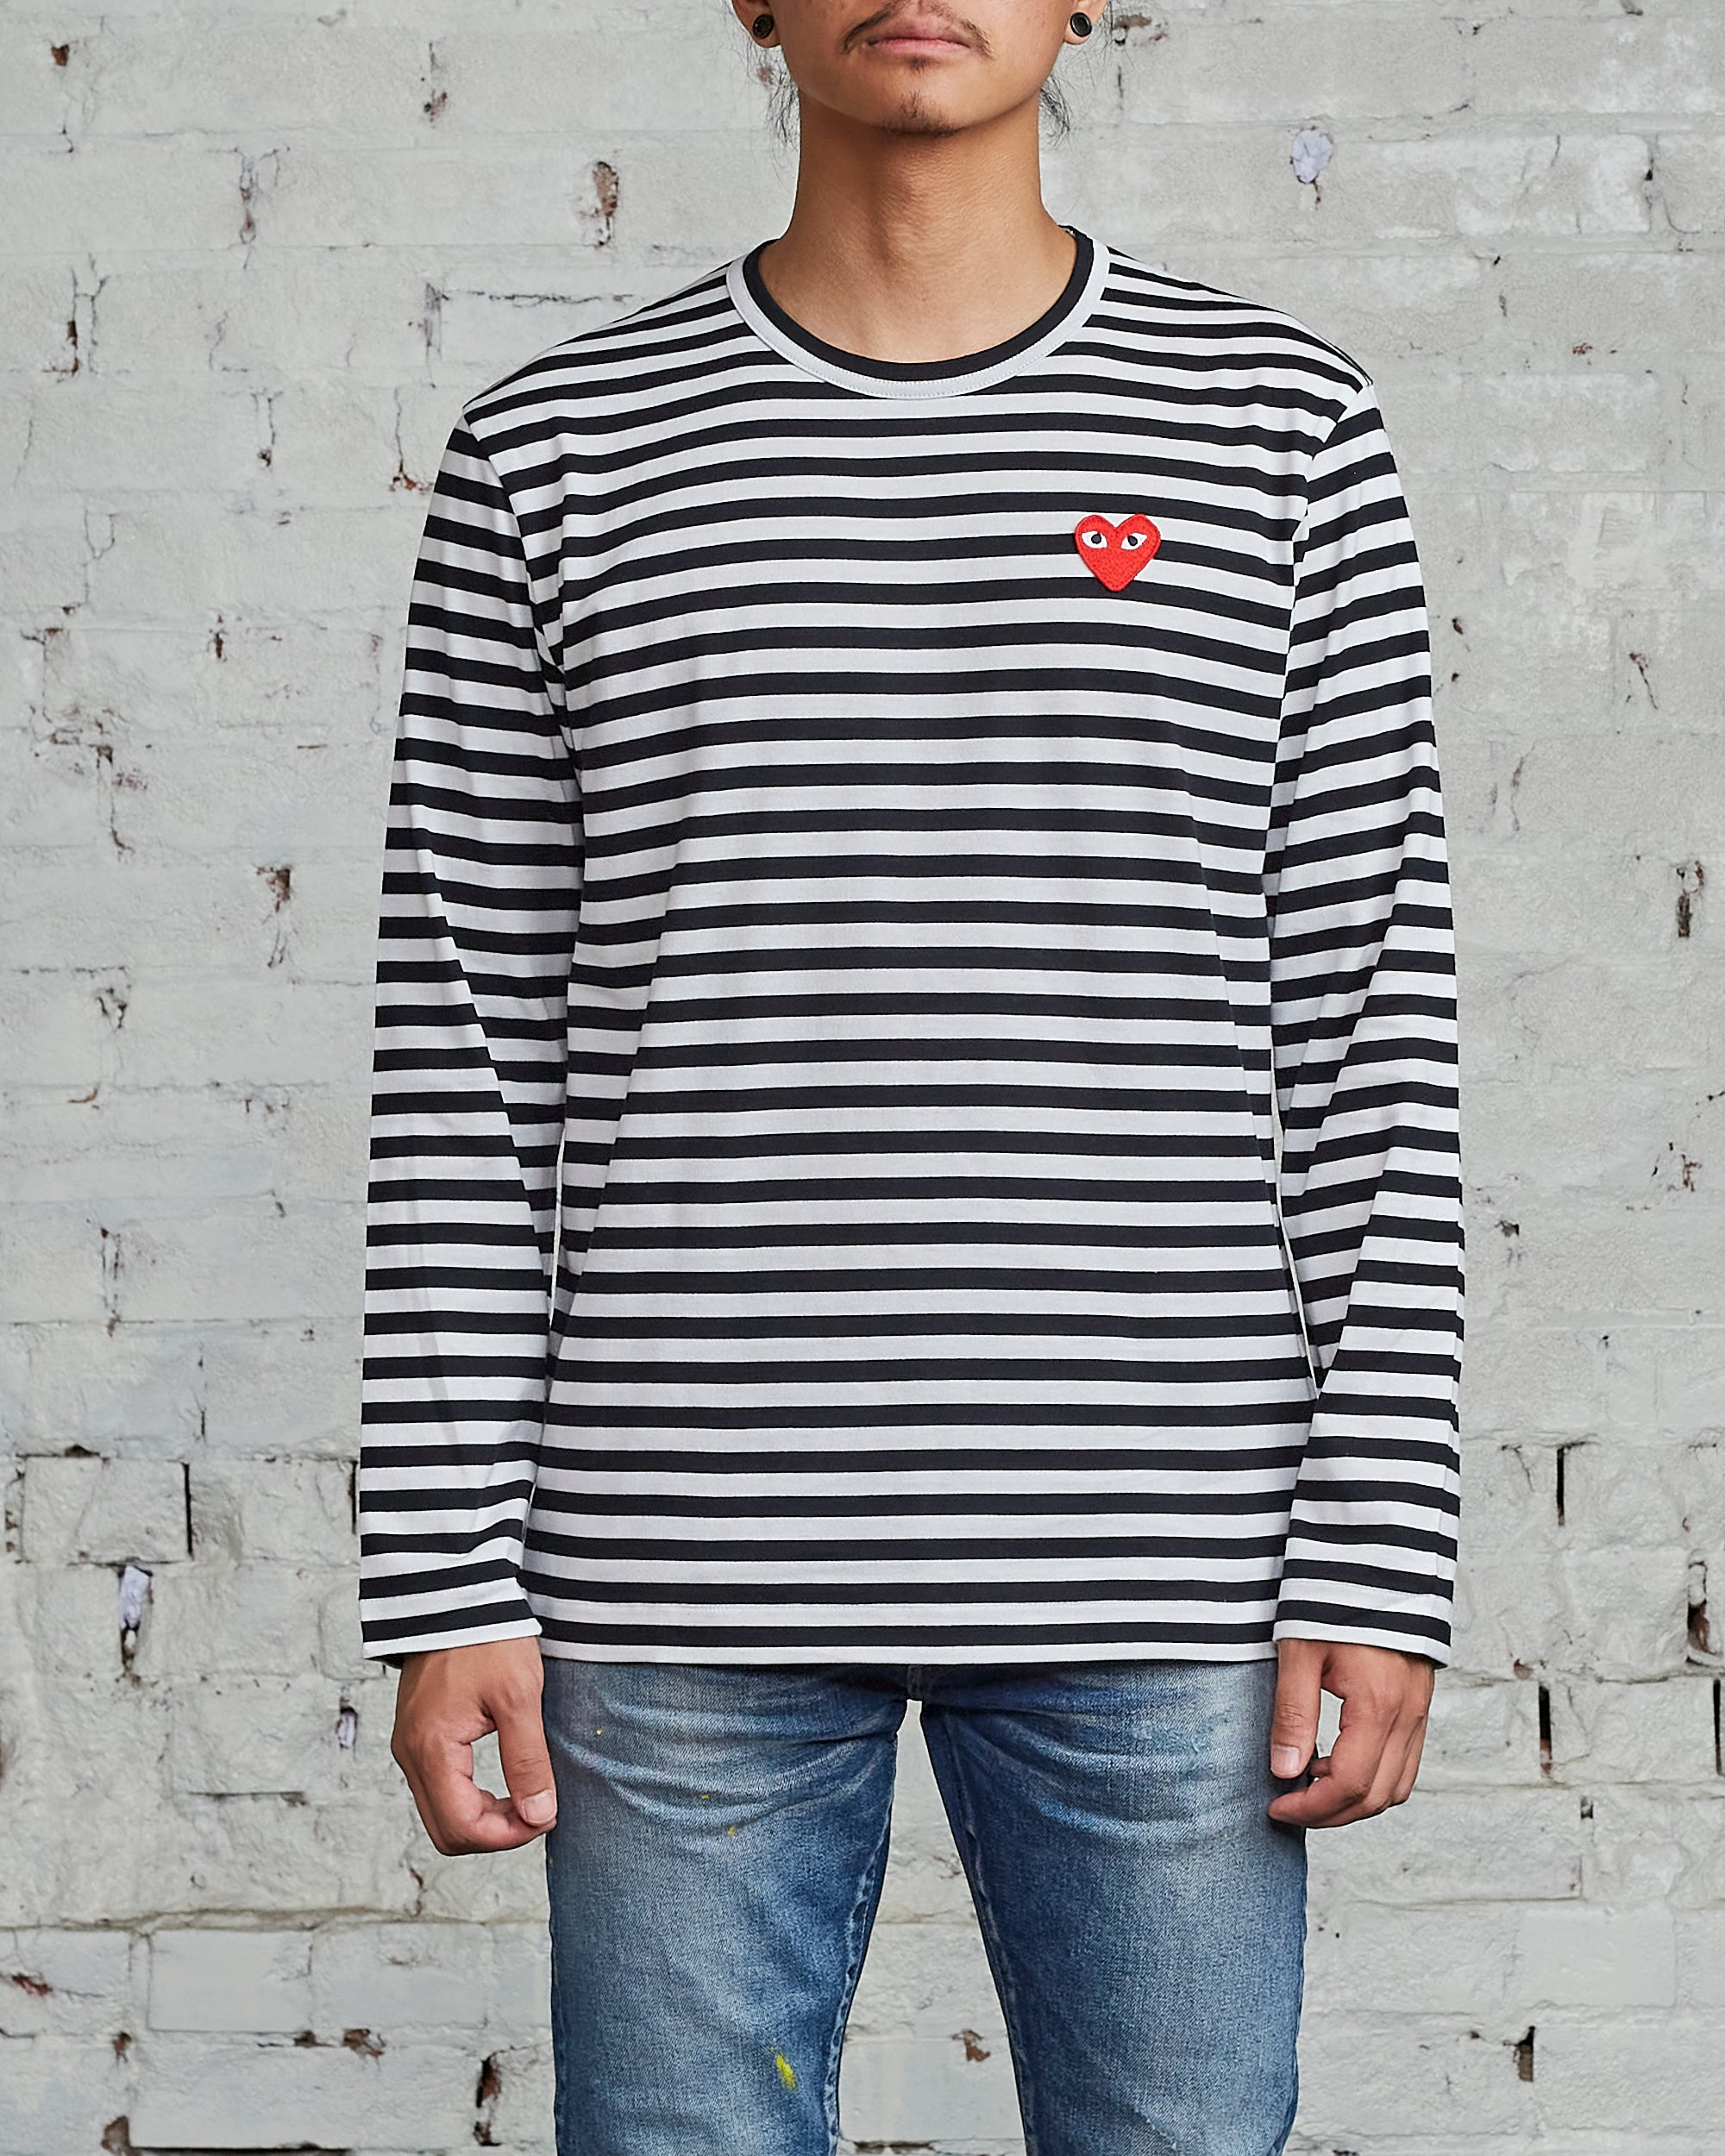 Comme des Garçons PLAY Red Heart Striped Long Sleeve T-Shirt Black / White